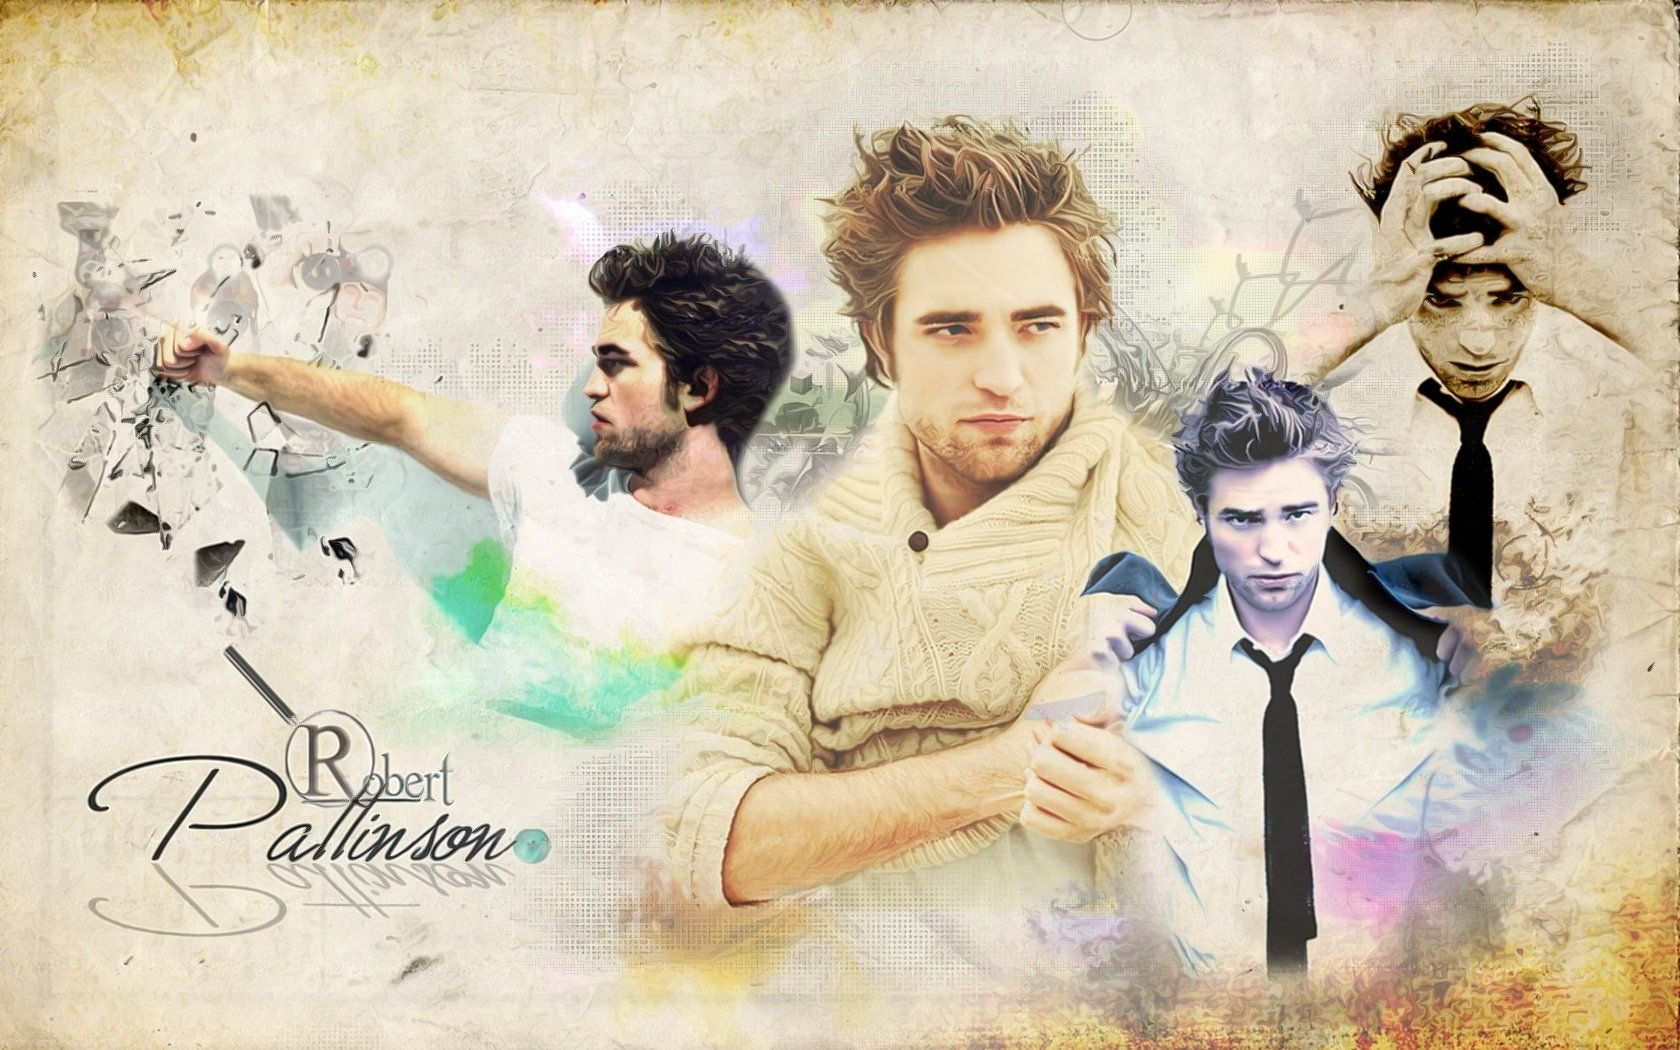 Robert-Pattinson-twilight-series-9030014-1680-1050 - сумреки обои